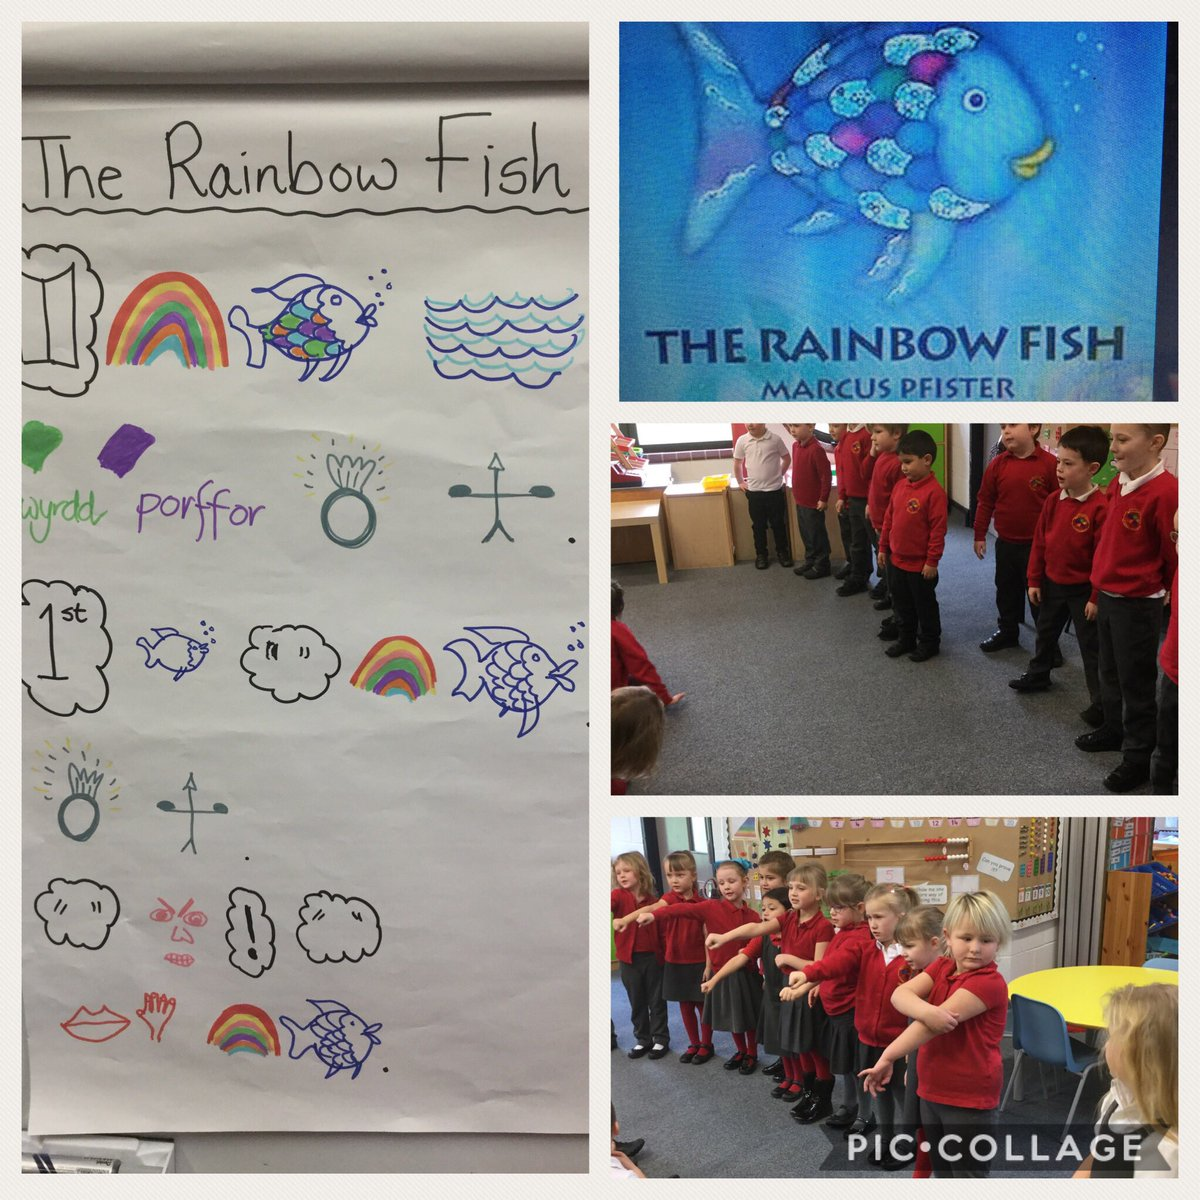 Blaenycwm Primary On Twitter Dosbarth Coch Started Their Talk For Writing Today The Story